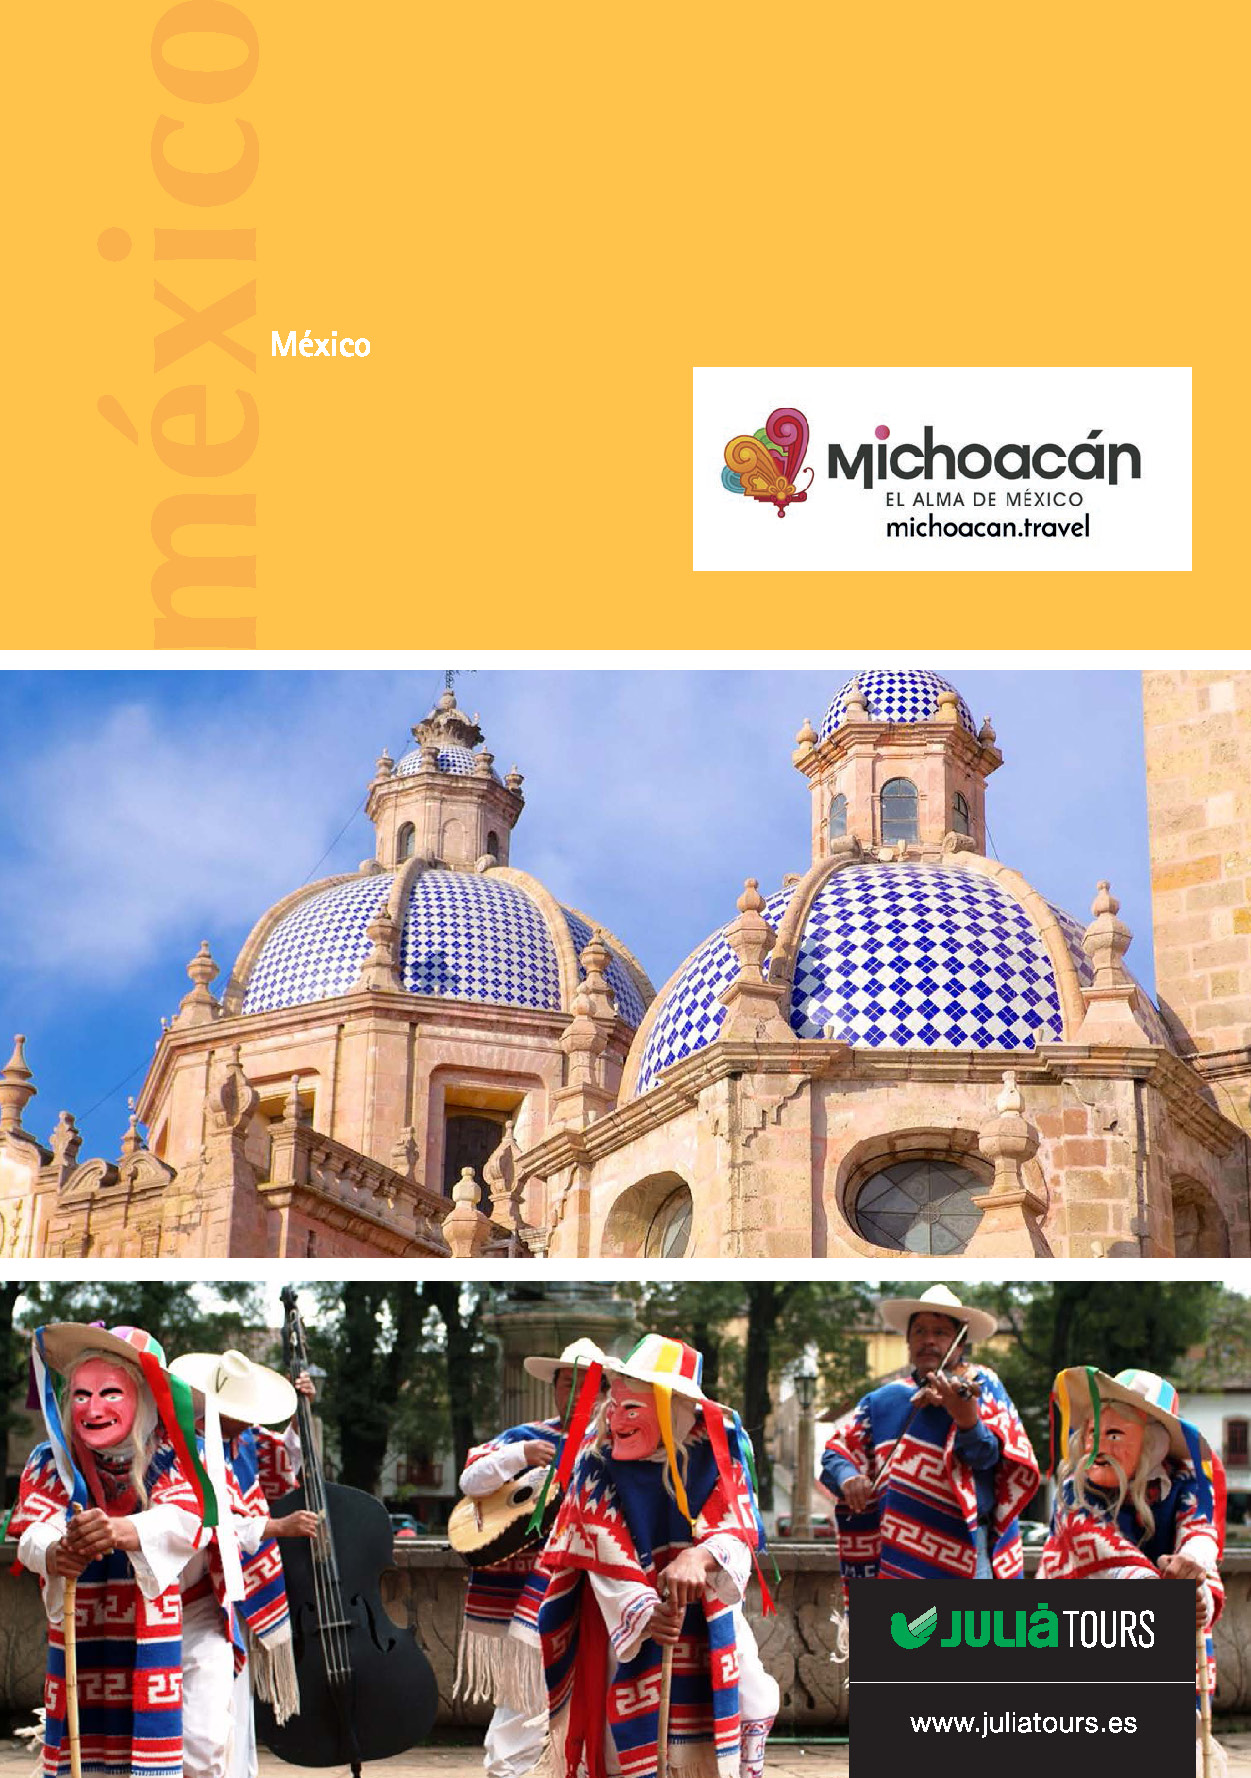 Catalogo Julia Tours Michoacan 2018-2019